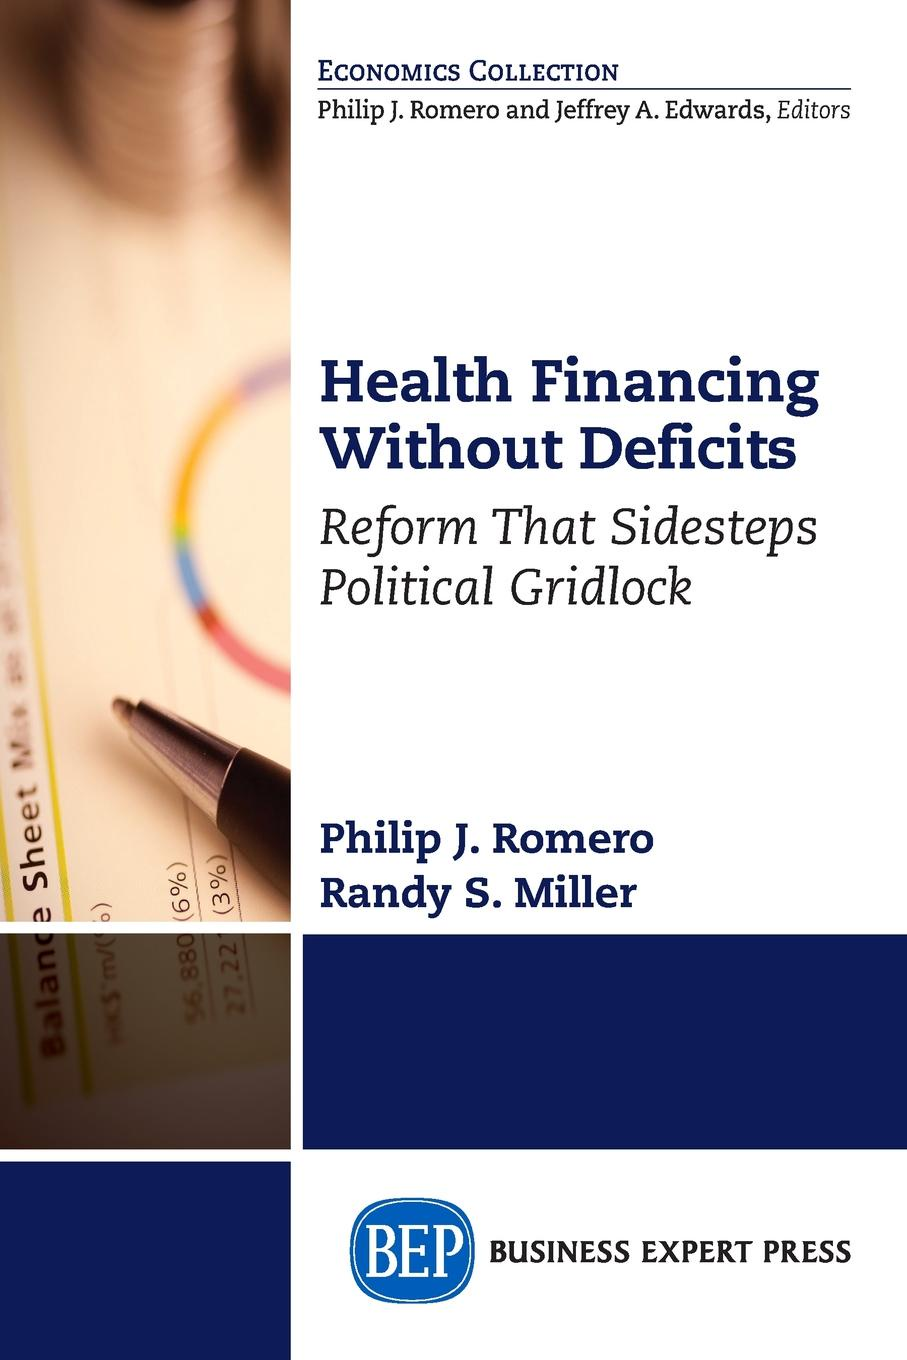 Health Financing Without Deficits. Reform That Sidesteps Political Gridlock America's health system has been a polarizing issue in most...